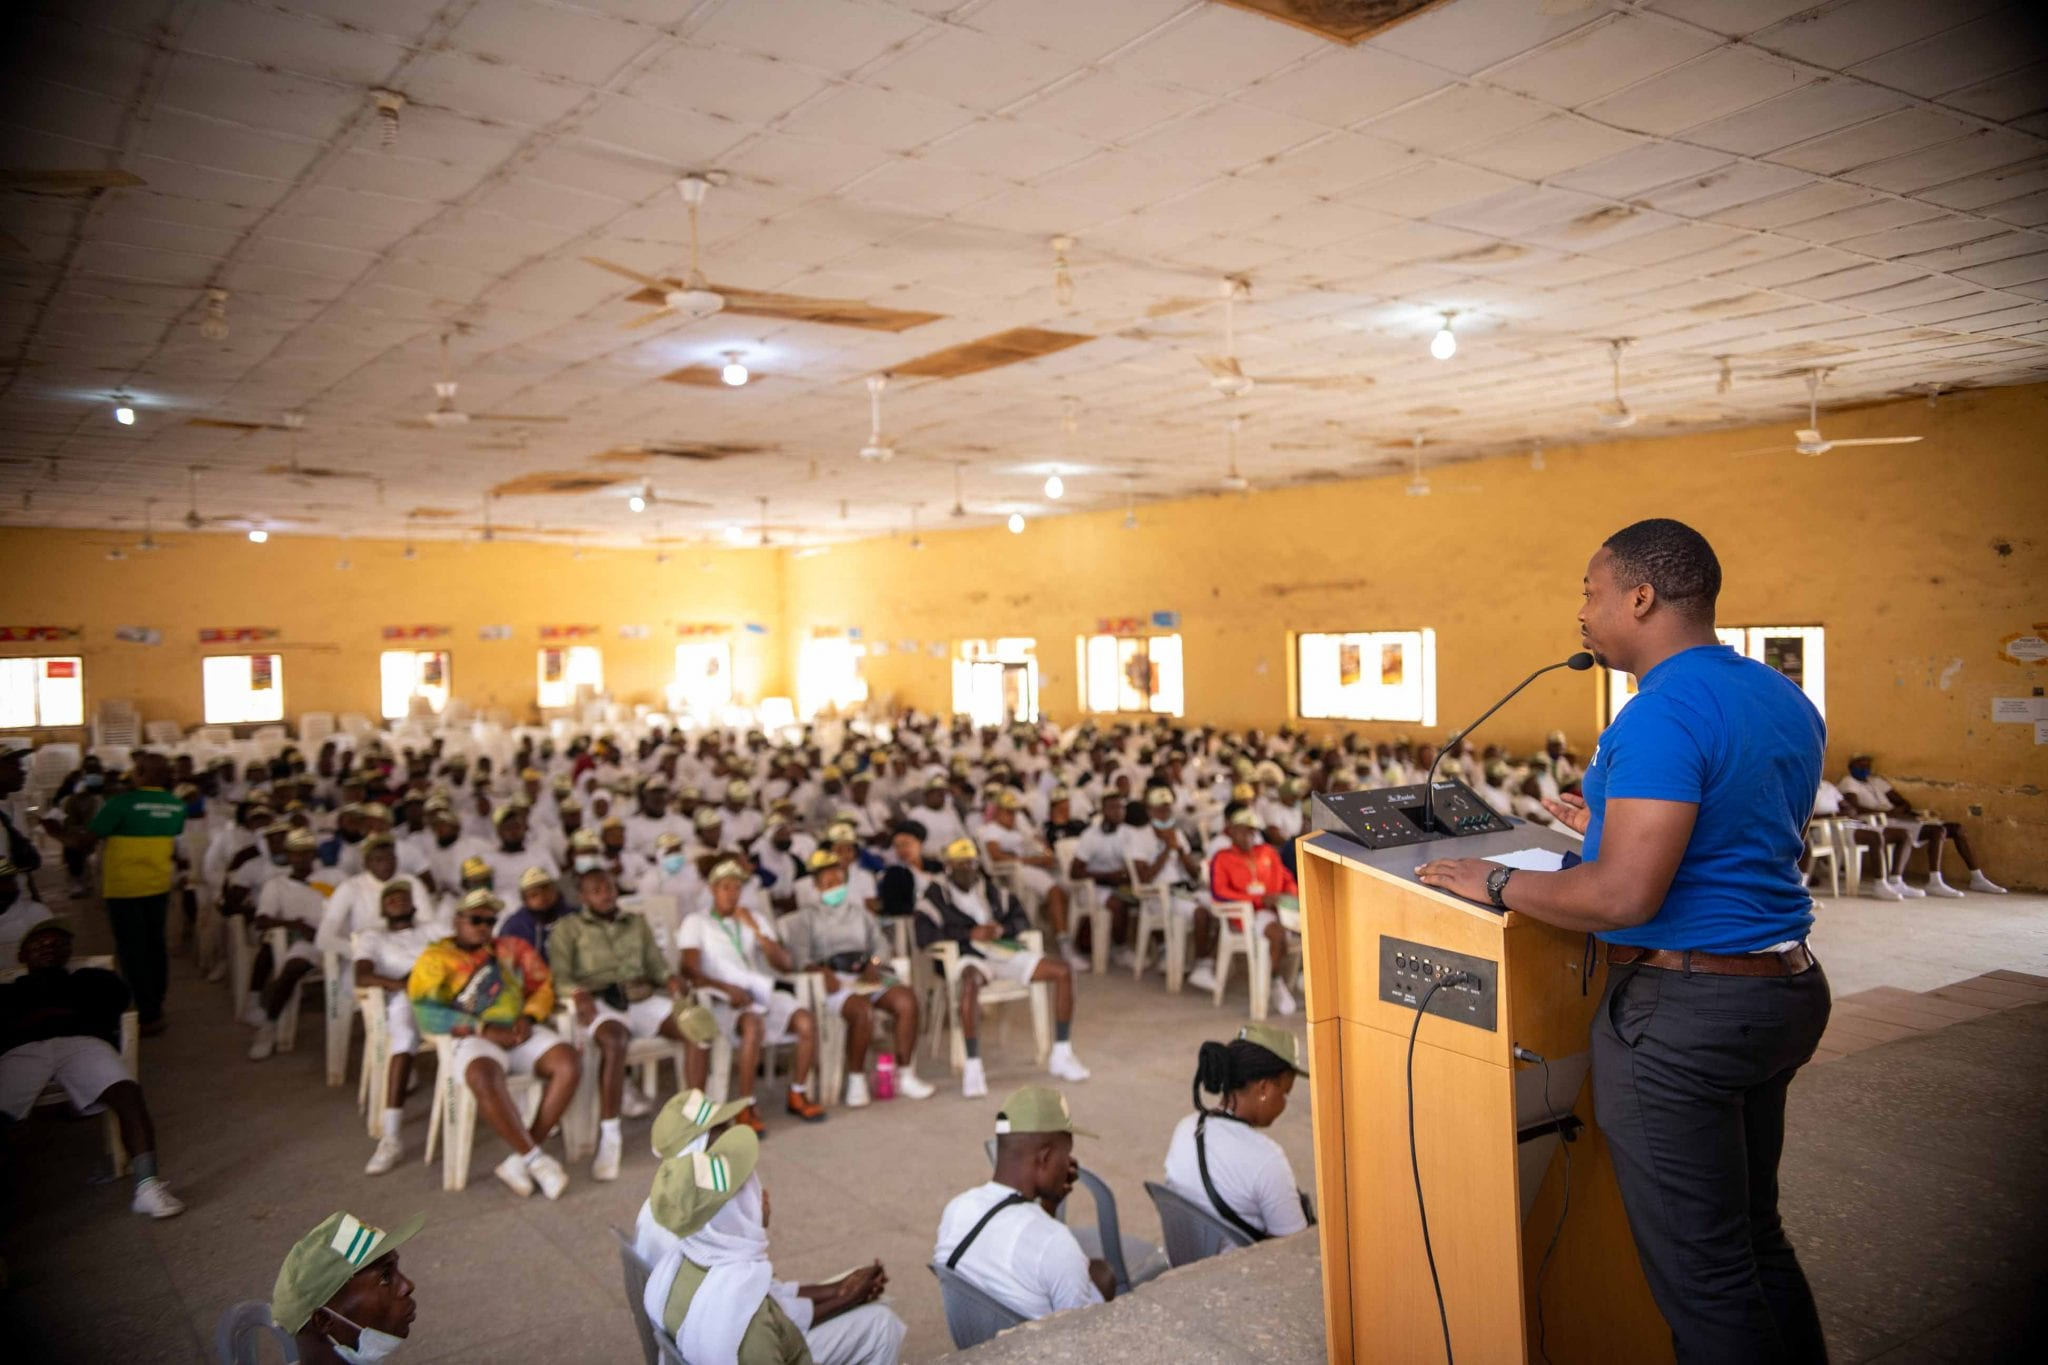 Jobberman partners with the Nigerian Youth Service Corps [NYSC] to train 120,000 youth corpers a year